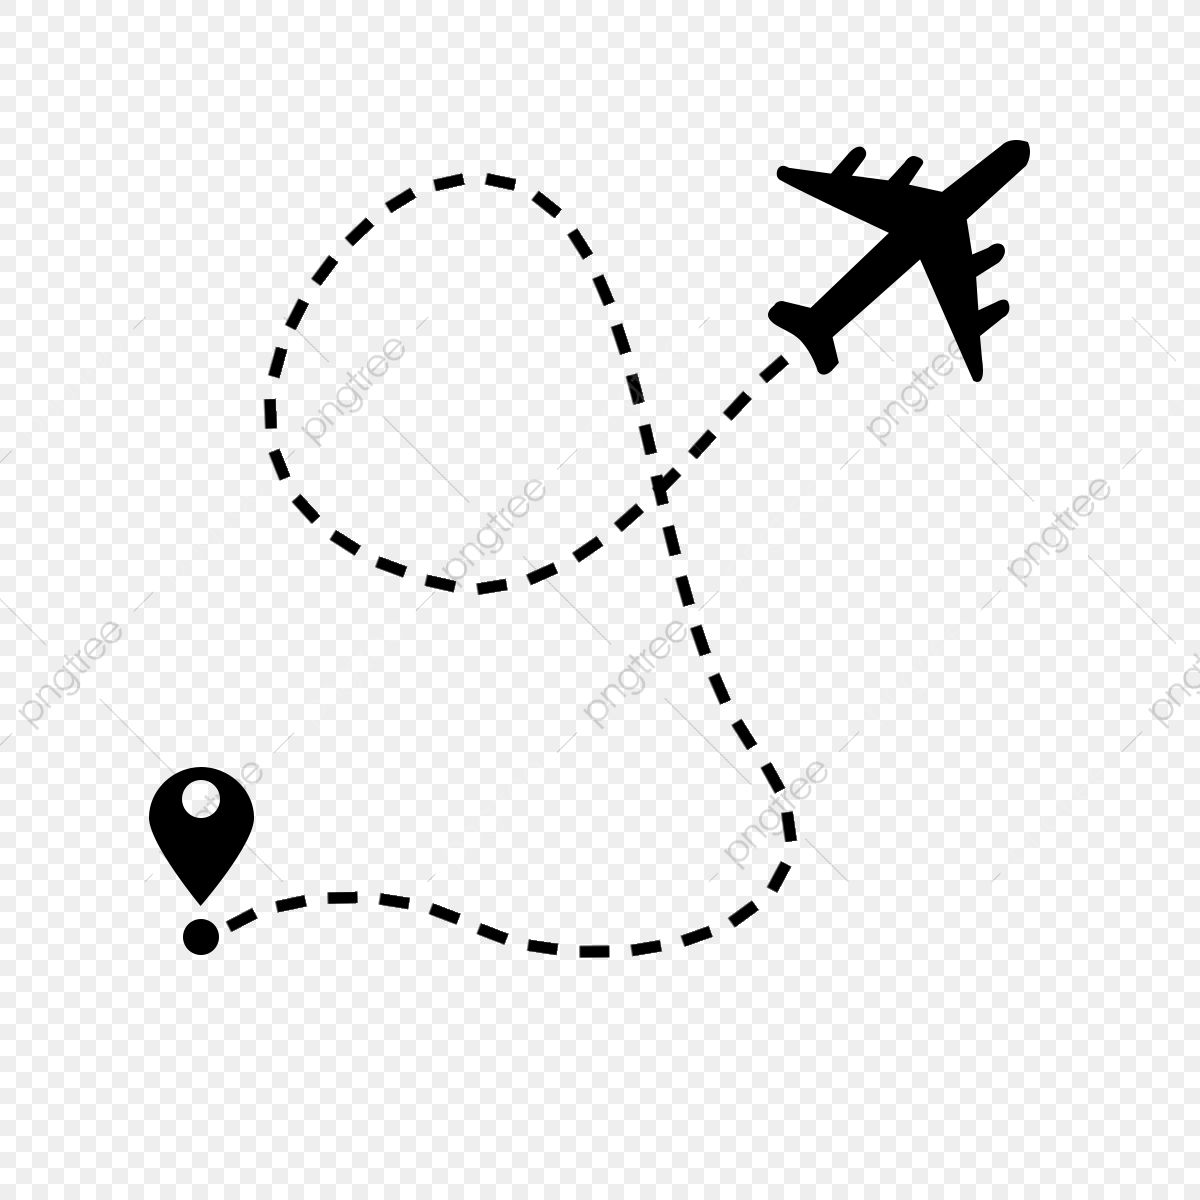 Air Plane Flight Route With Start Point And Dash Line Trace Plane Airplane Line Png Transparent Clipart Image And Psd File For Free Download Plane Flight Plane Drawing Airplane Icon